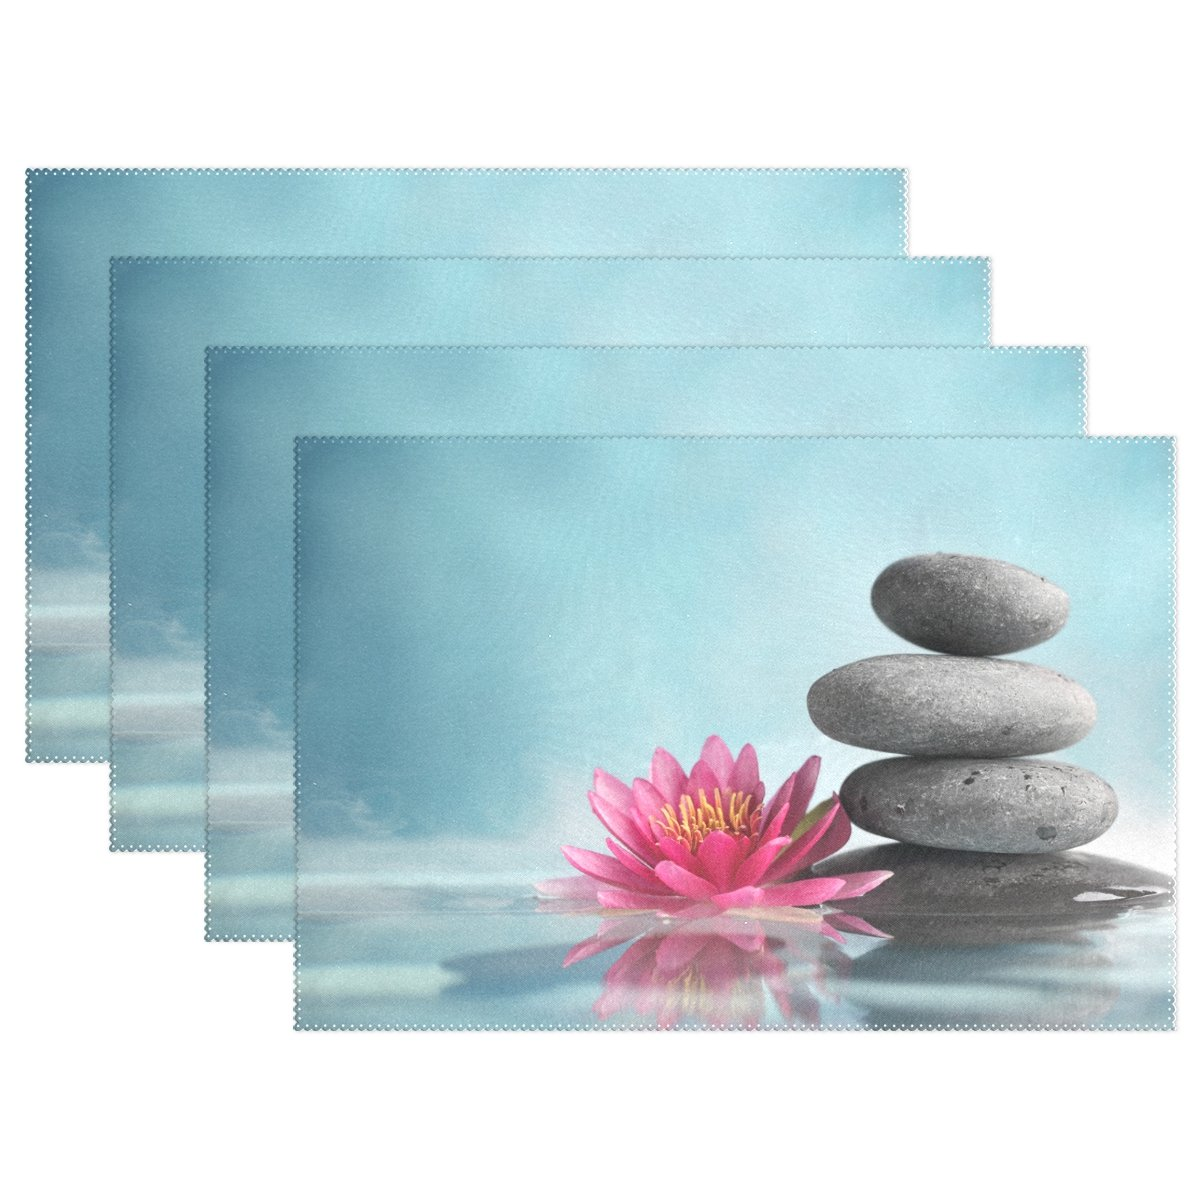 WellLee Spa Life Water Lily Zen Placemat Set of 4 Polyester Plate Holder,Lotus Flower Table Mats for Kitchen Dining Room,12x18 Inch